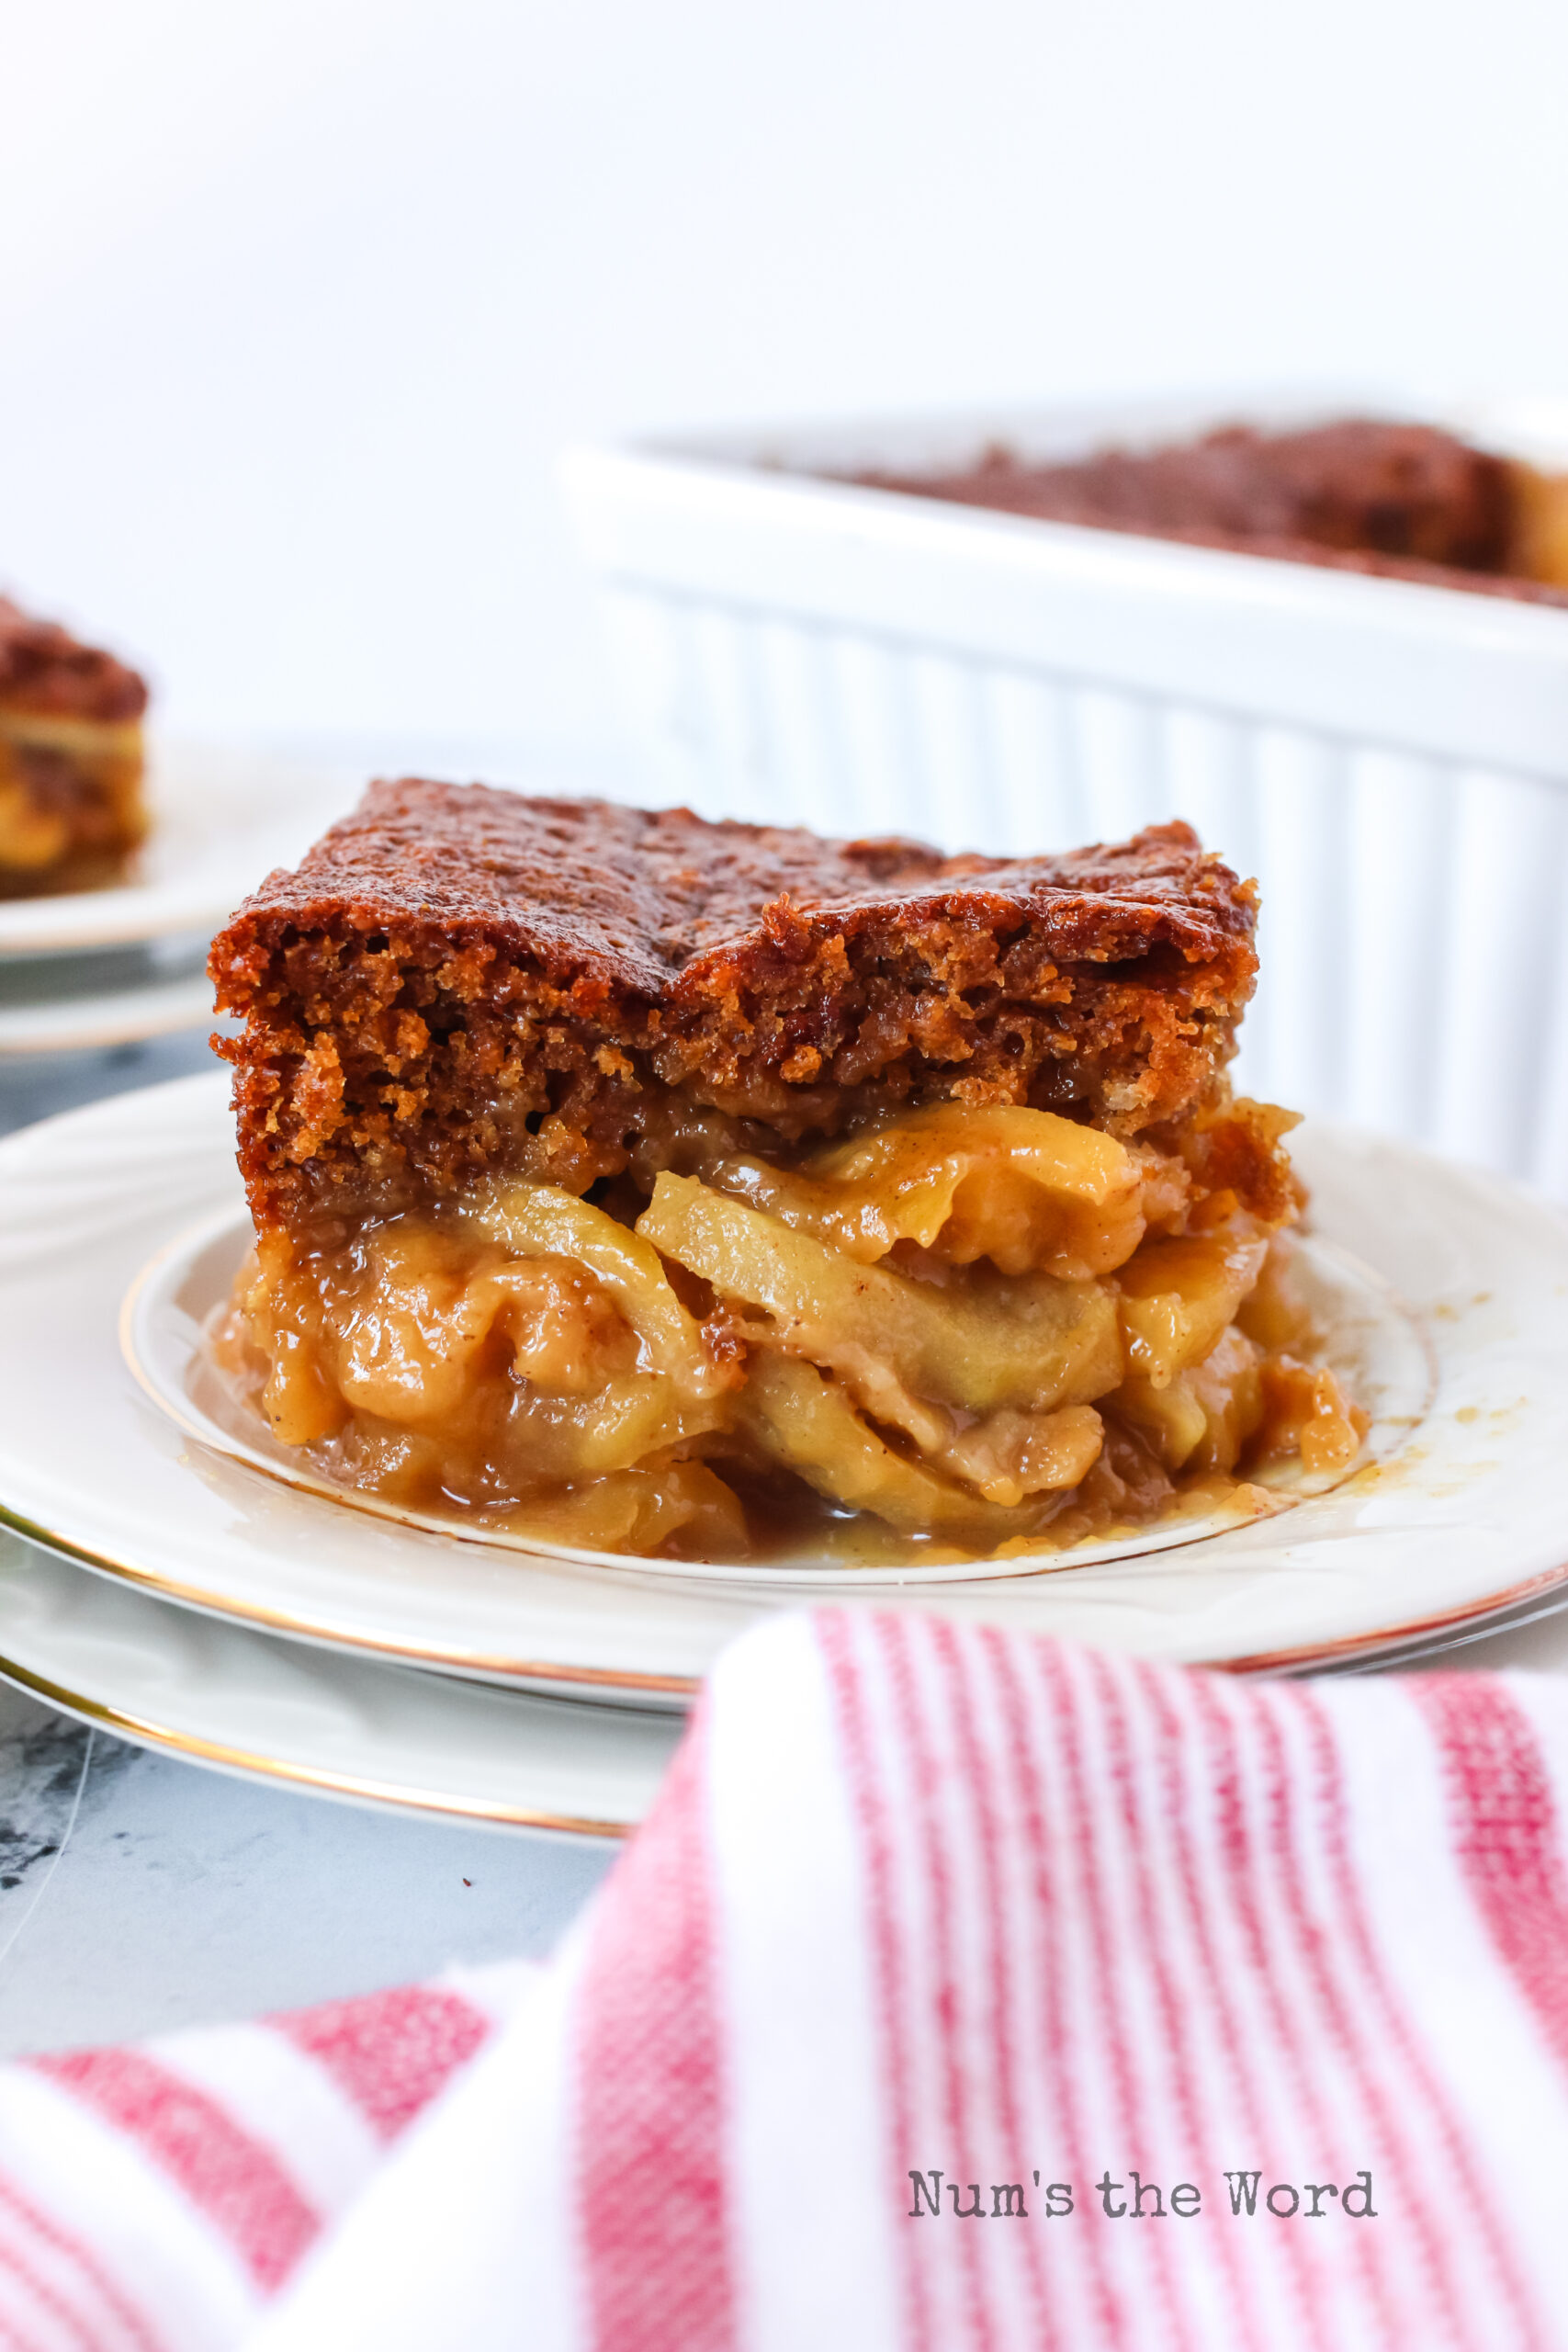 apple gingerbread cake on a plate showing the layers of apples and cake.